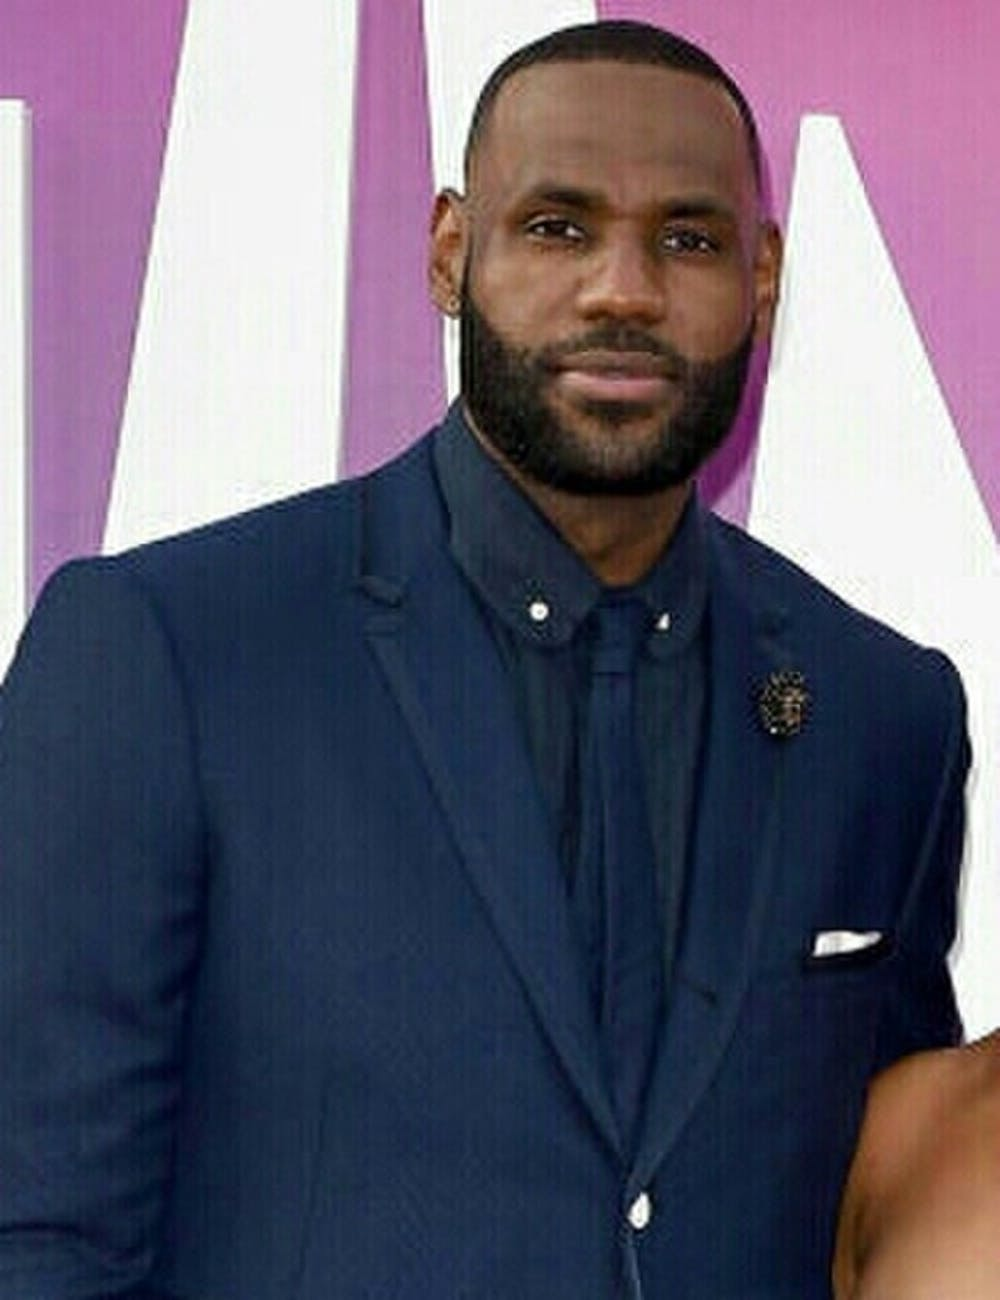 <p>This time, the star player sucked into the adventure is LeBron James on a mission to save his son and the whole world from the plans of a rogue AI called Al-G Rhythm, played by Don Cheadle.&nbsp;</p>